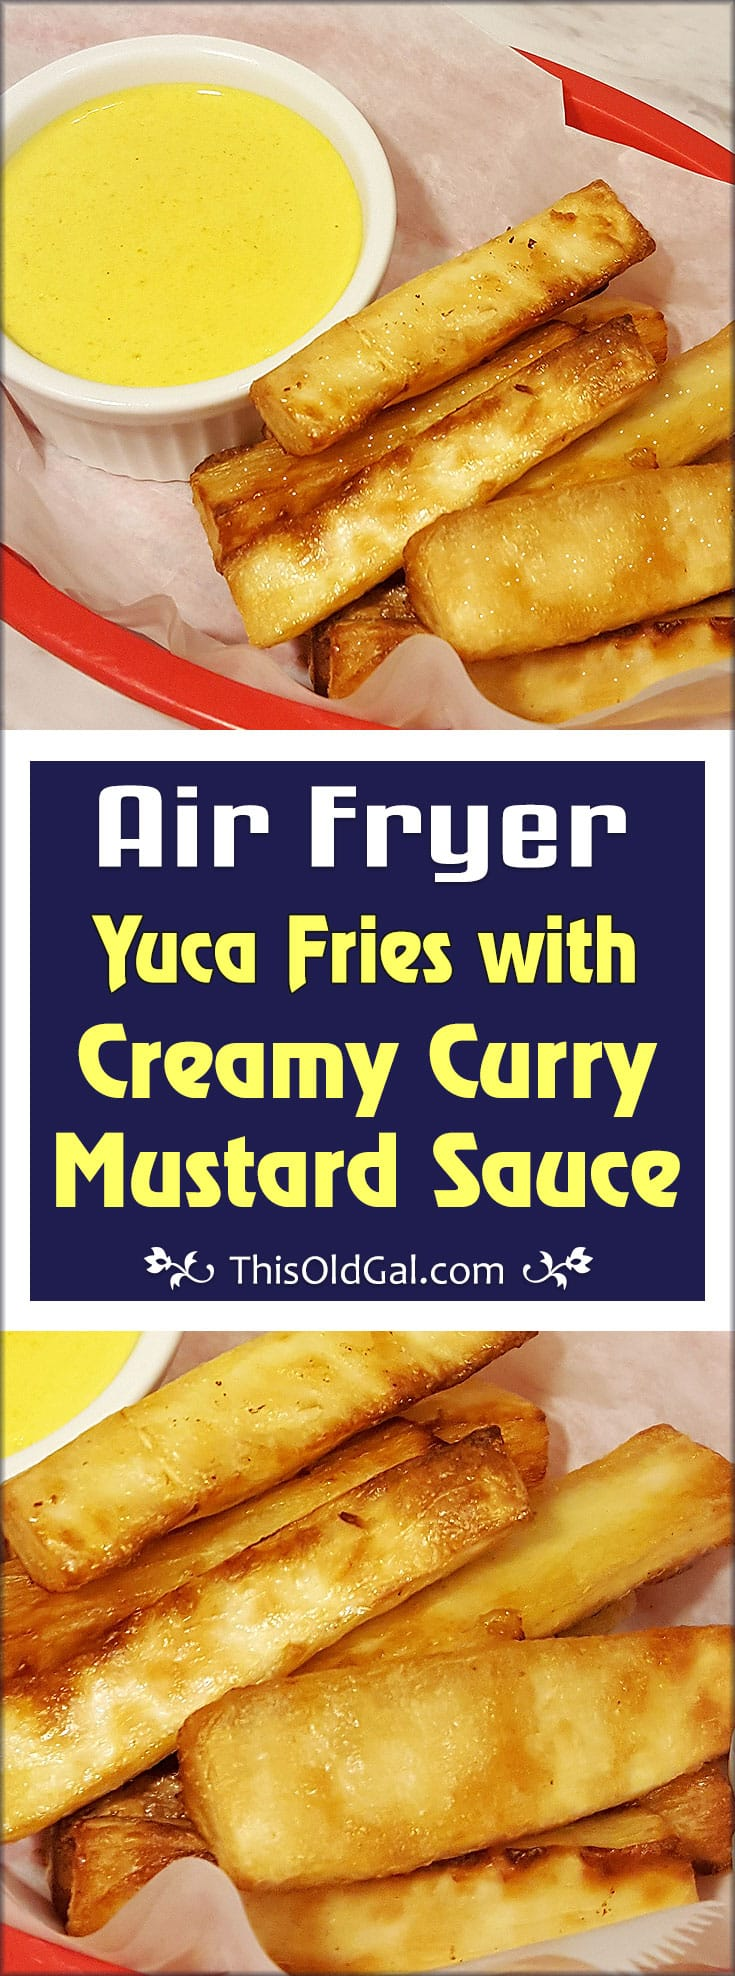 Air Fryer Yuca Fries with Creamy Curry Mustard Sauce Cassava